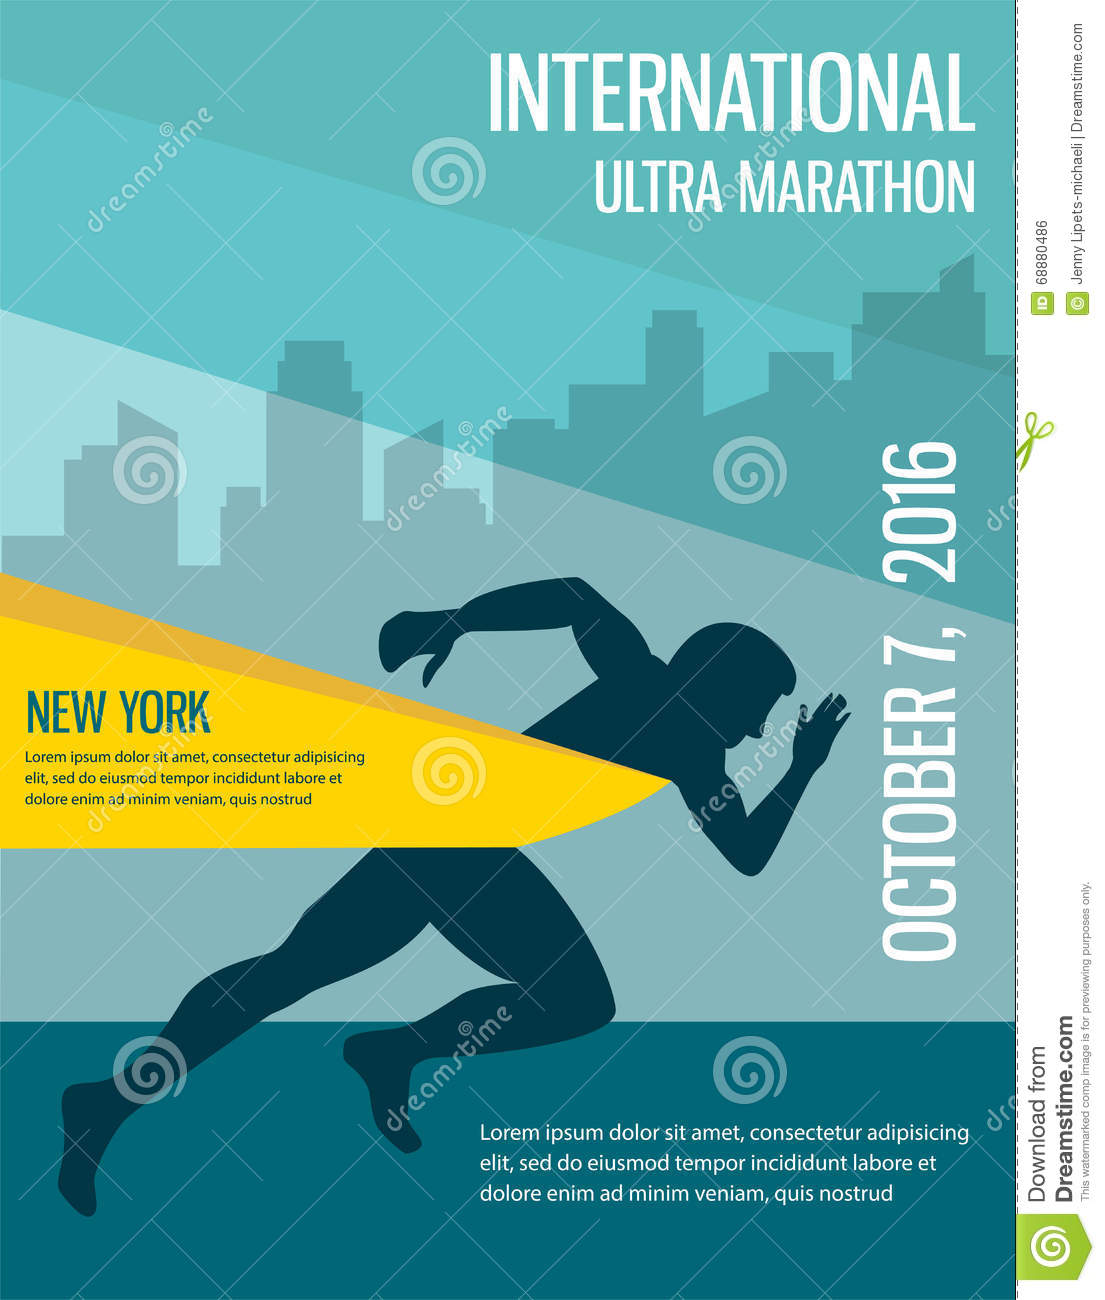 Poster design free template - Design Finish Line Poster